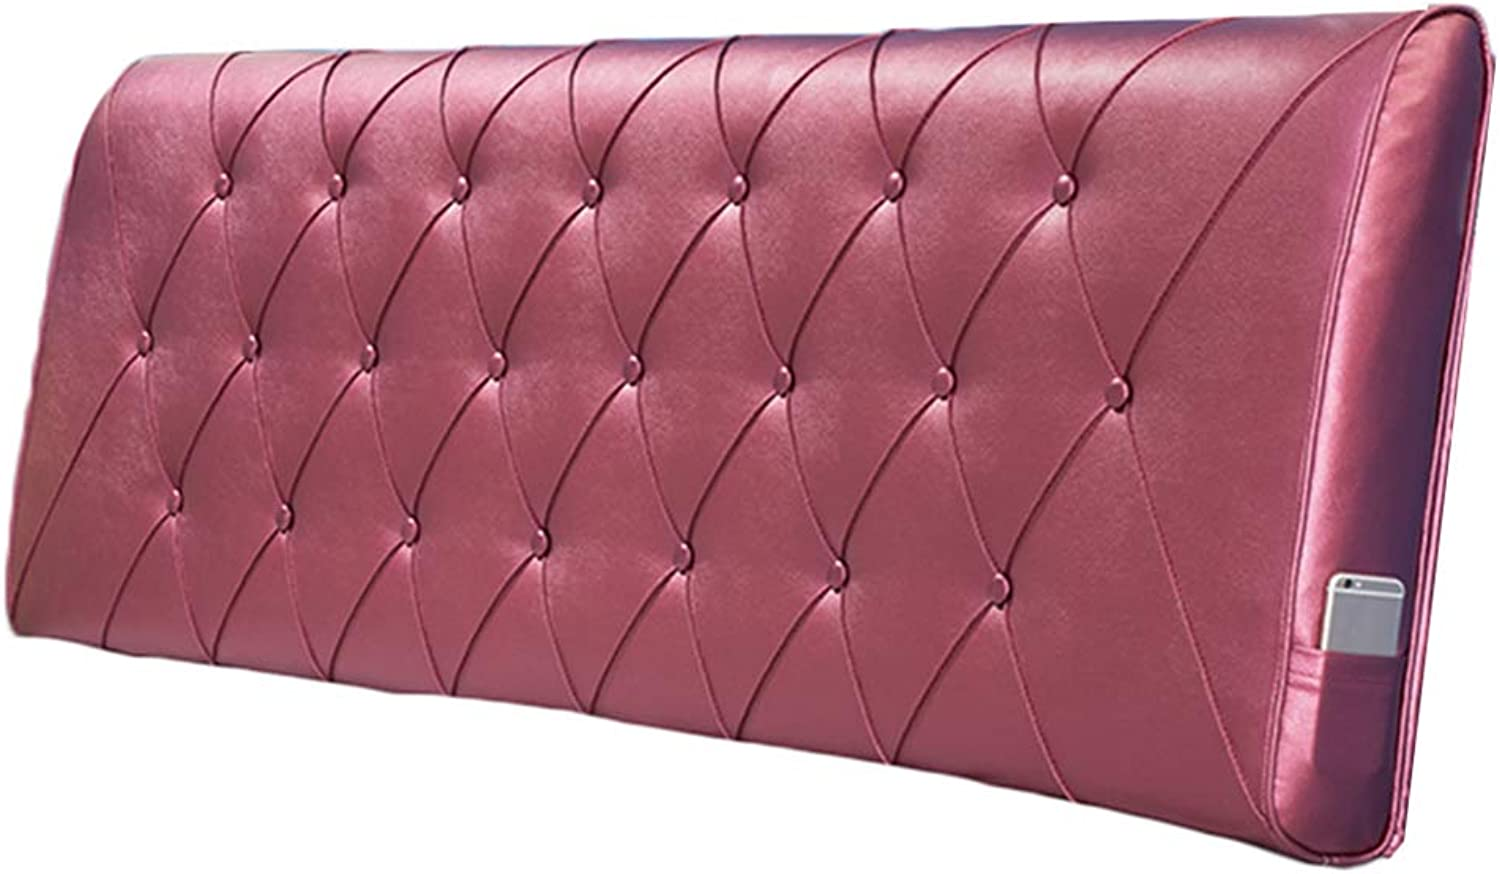 WENZHE Upholstered Fabric Headboard Bedside Cushion Pads Cover Bed Wedges Backrest Waist Pad PU Soft Case Home Backrest Simple Fashion, 6 colors (color   F, Size   90x60x11cm)